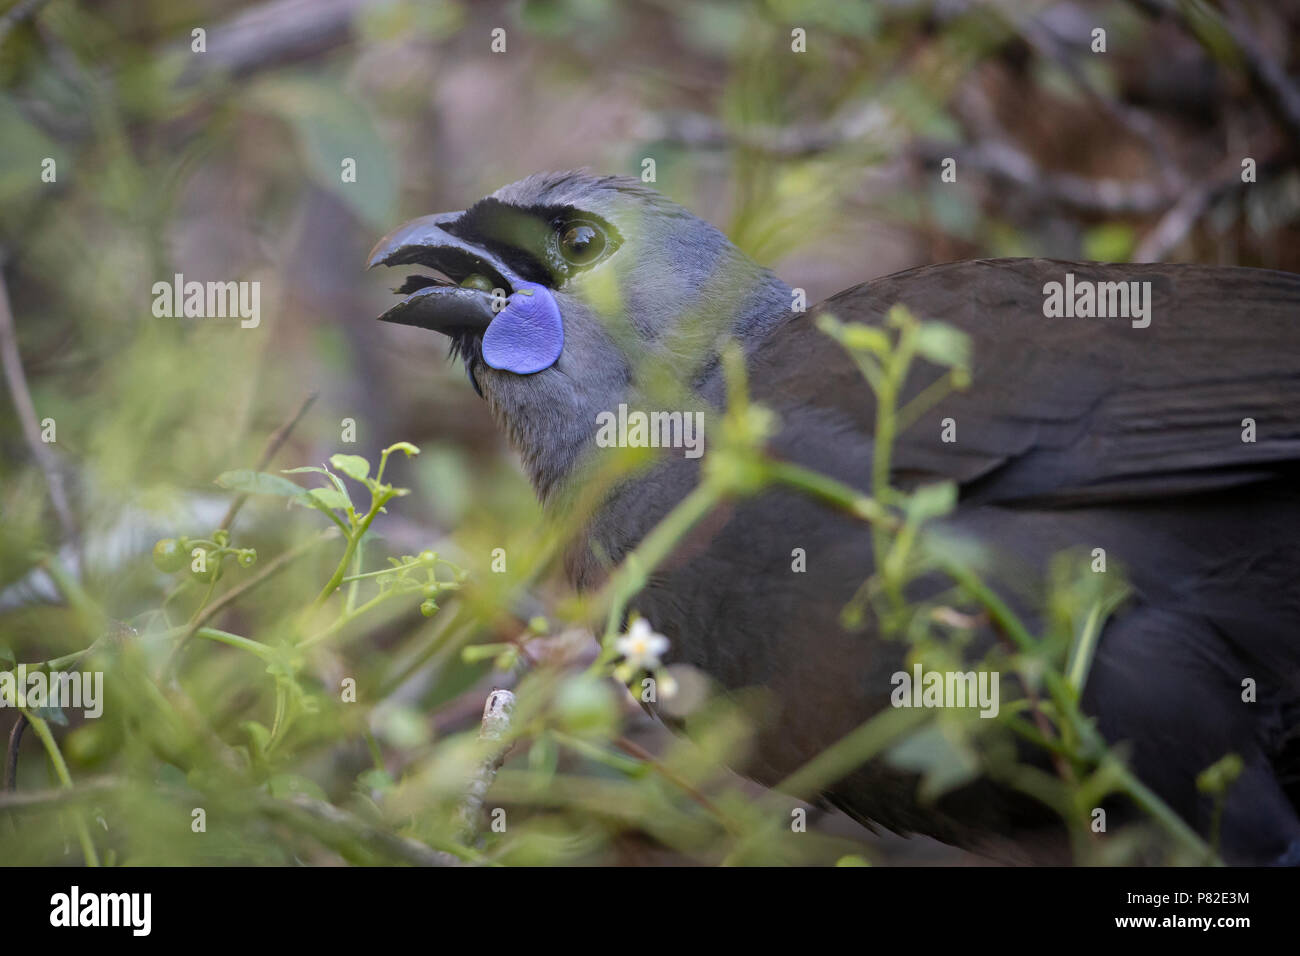 North Island Kōkako, New Zealand - Stock Image